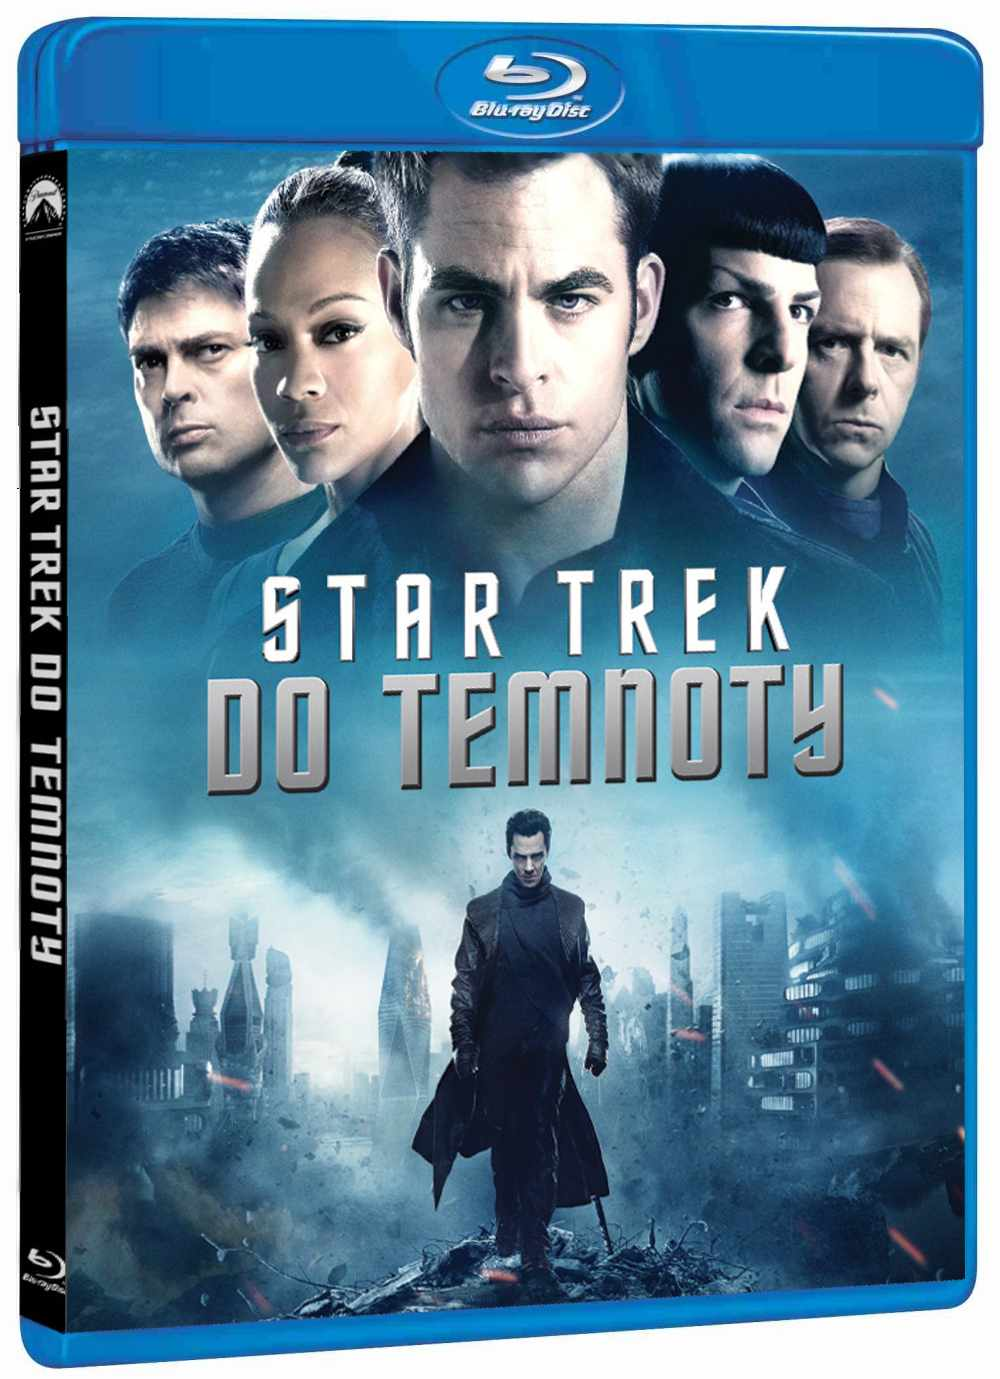 STAR TREK: DO TEMNOTY - Blu-ray